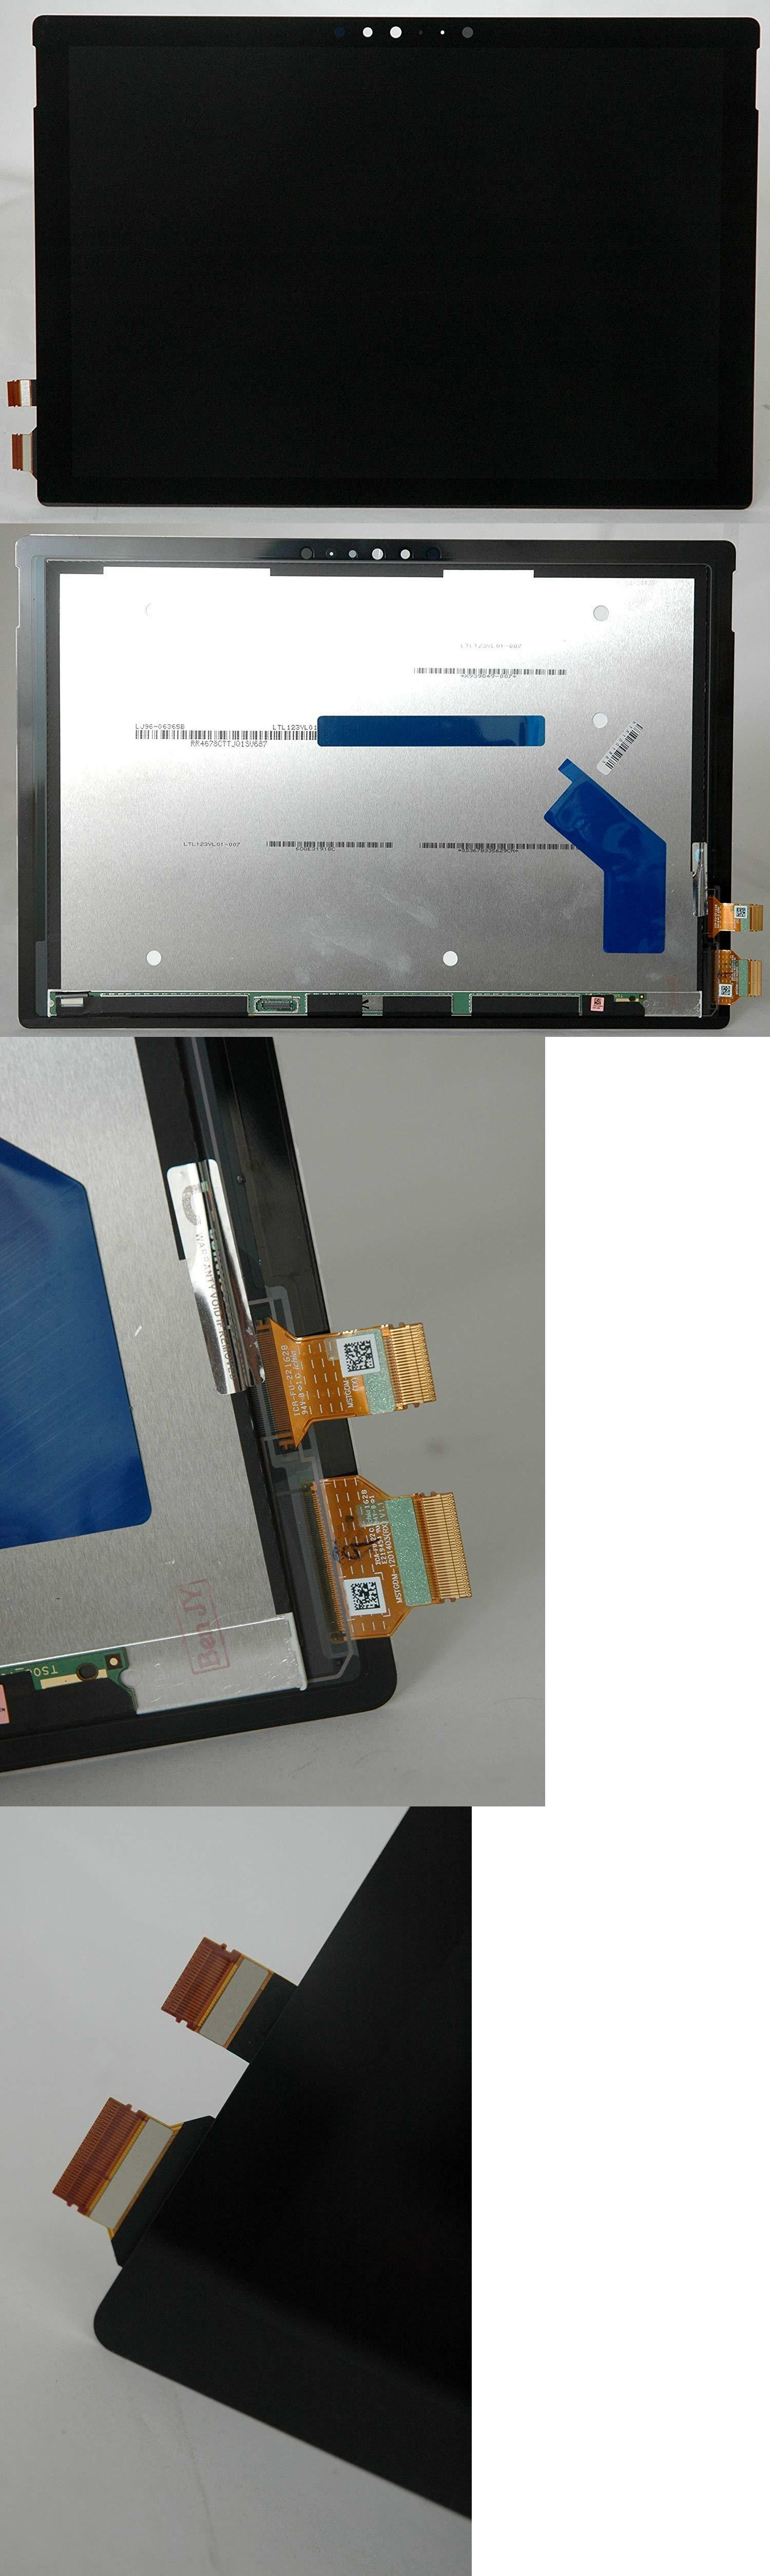 Laptop Screens and LCD Panels 31569: Microsoft Surface Pro 4